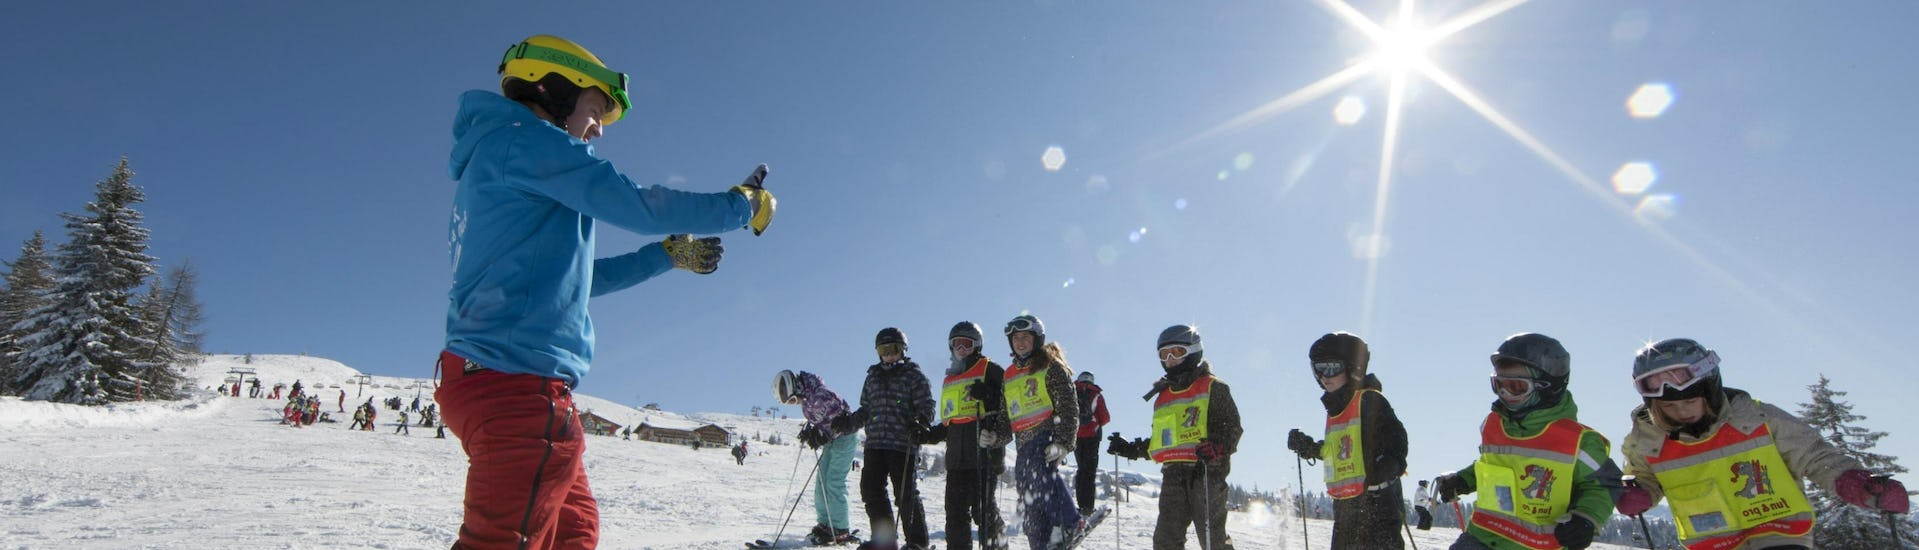 A ski instructor is holding one of the many group ski lessons in the ski resort of Morzine.